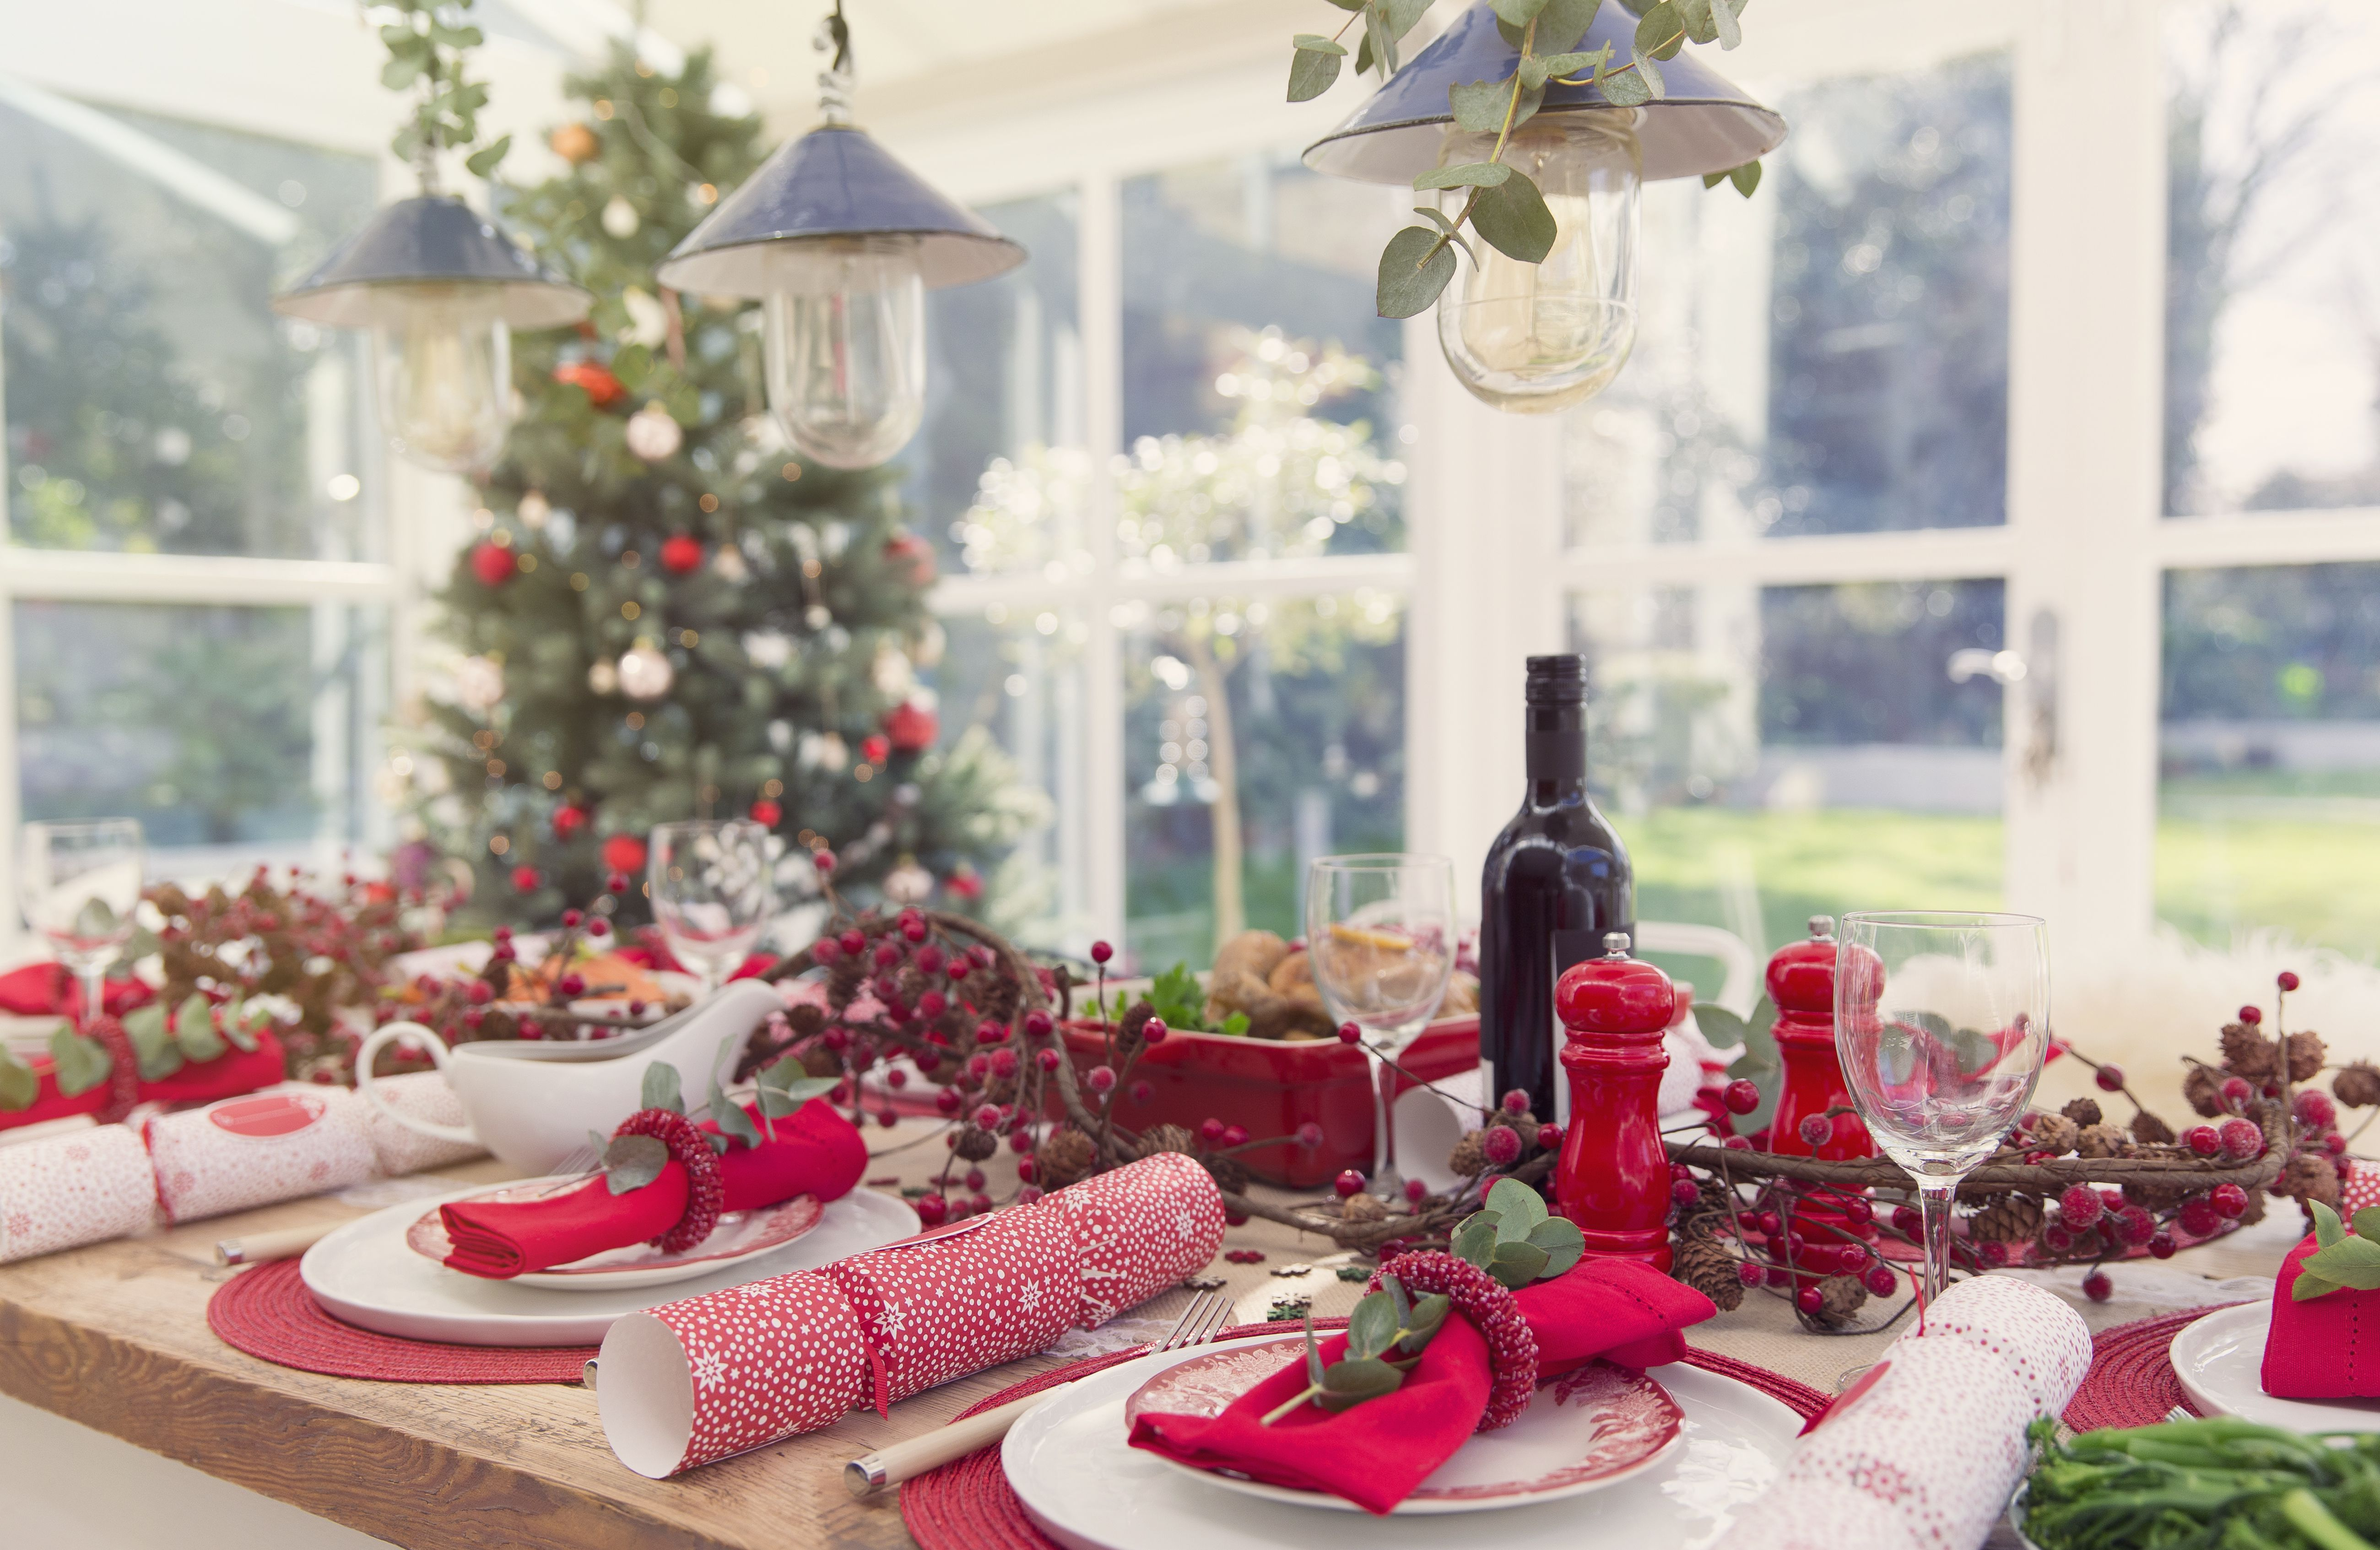 Placesettings and decorations on Christmas table